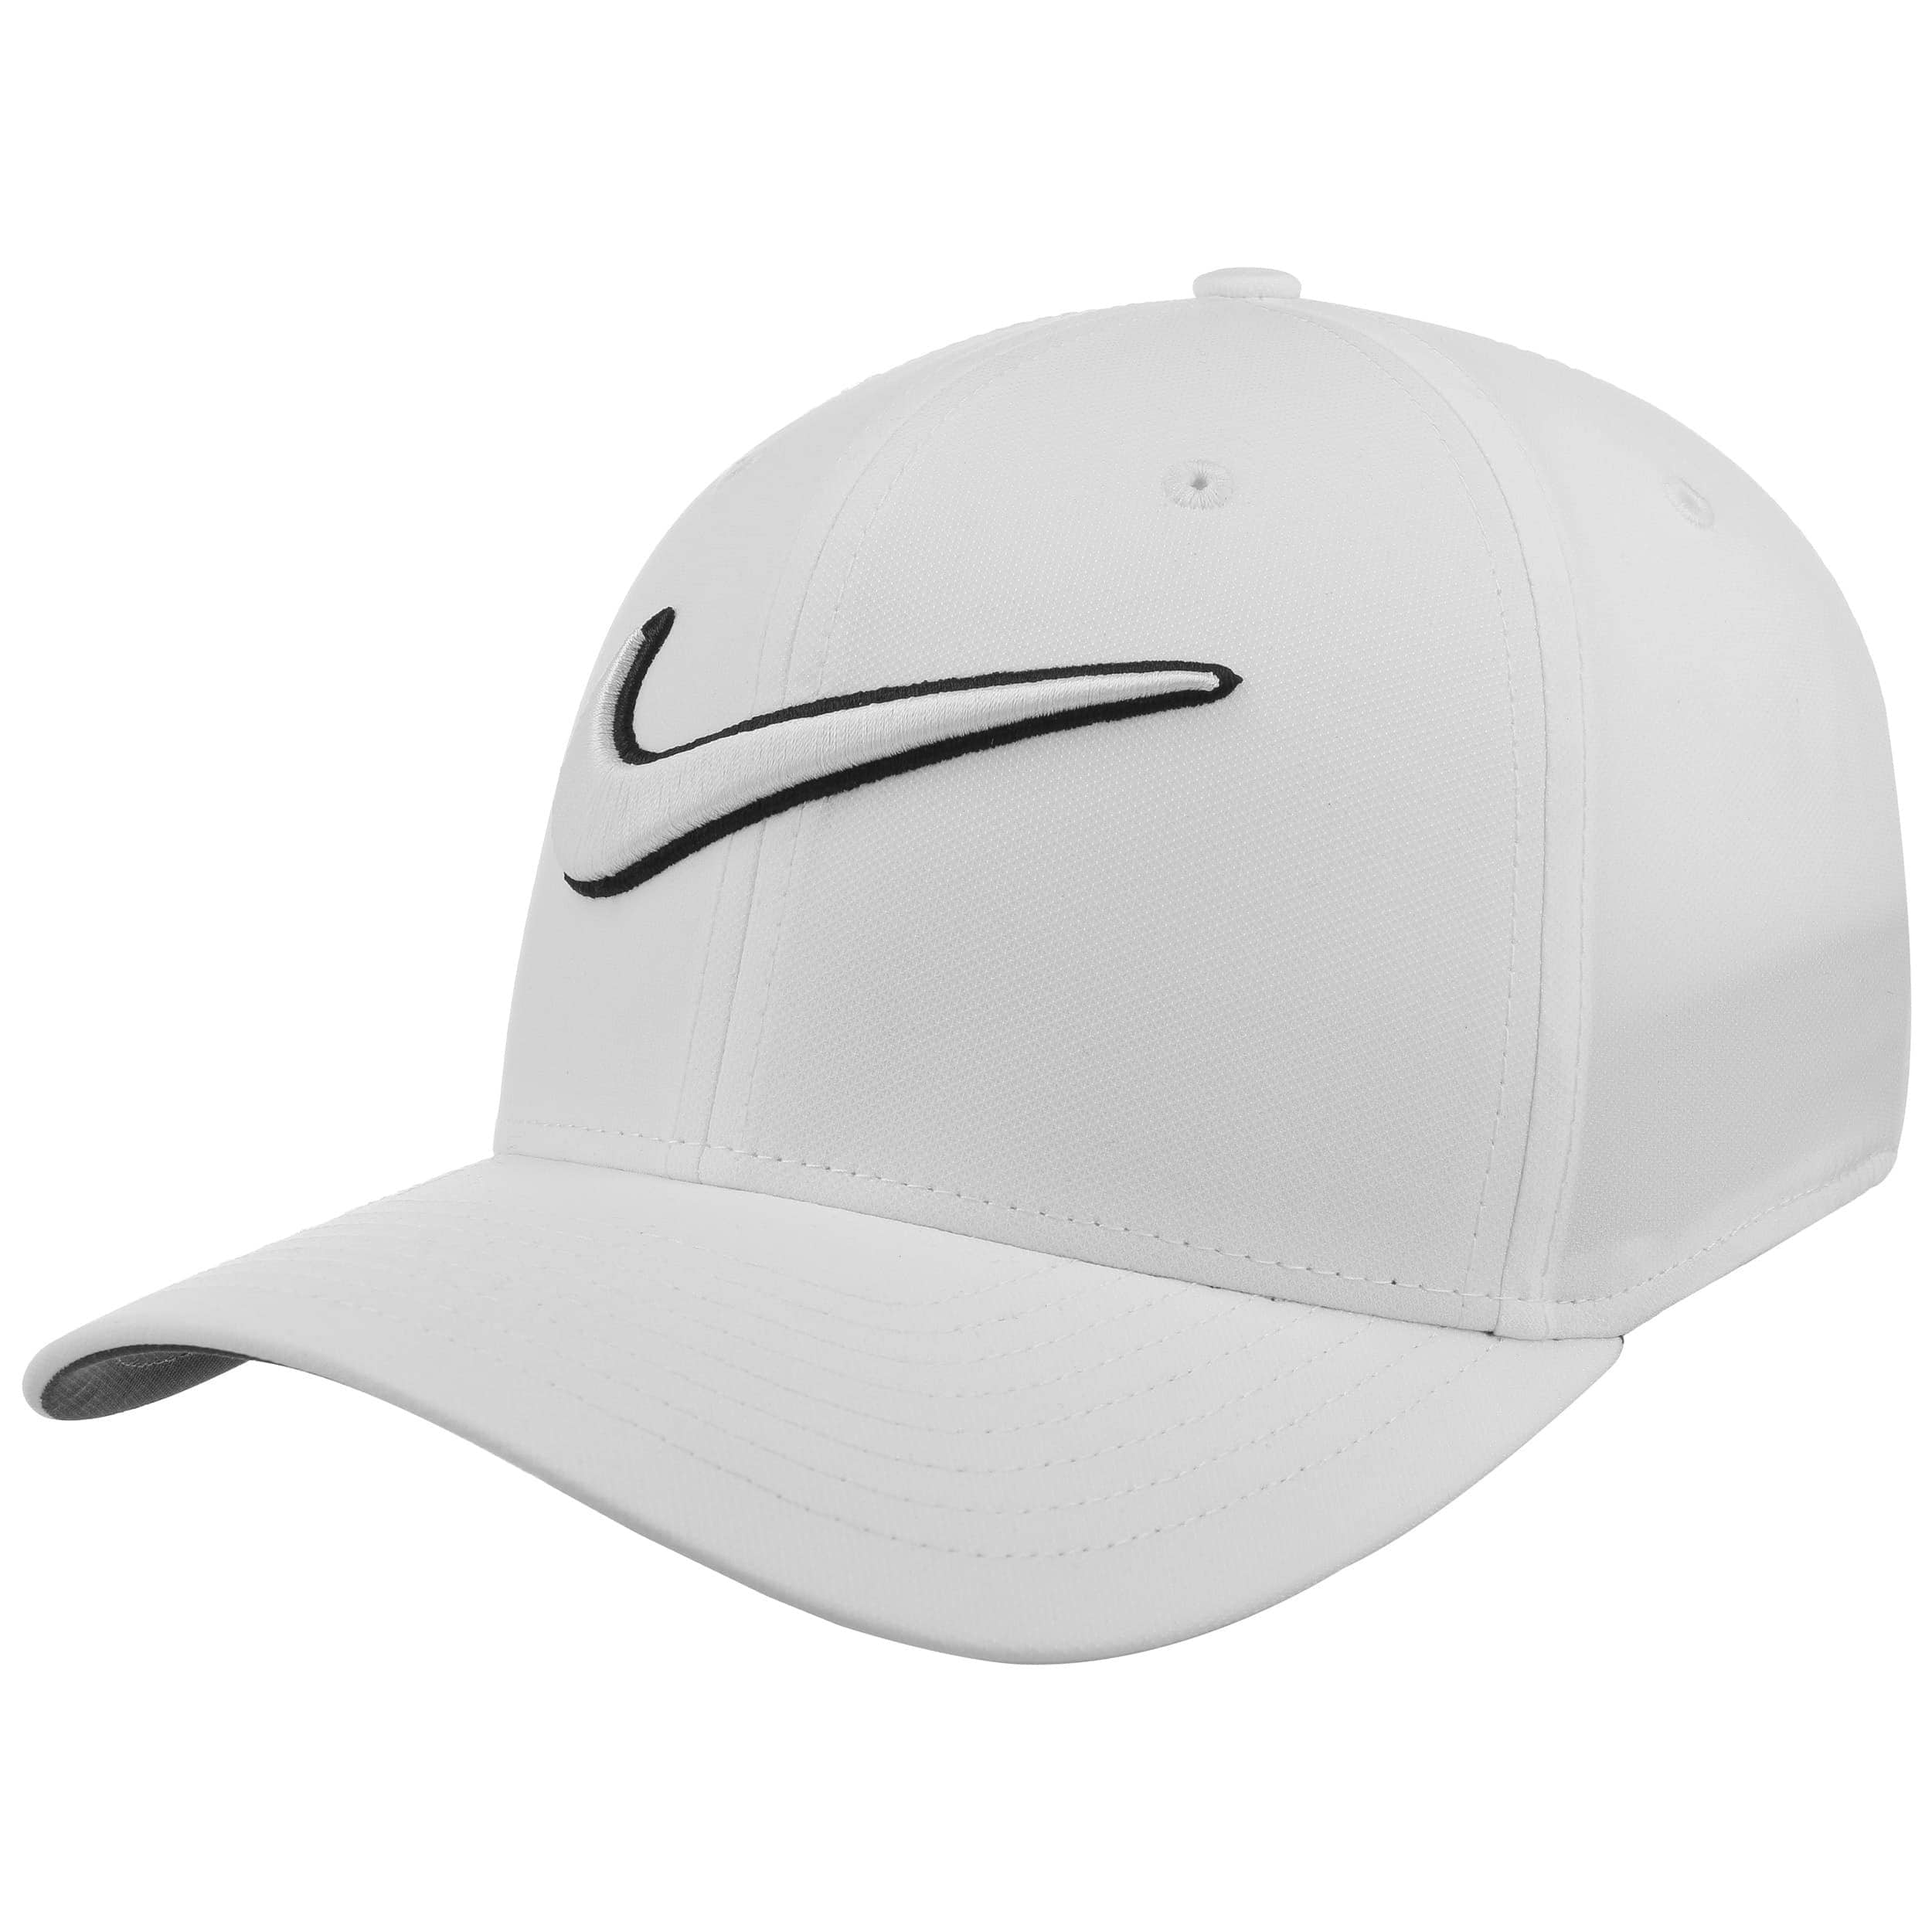 Golf Classic 99 Performance Pet by Nike